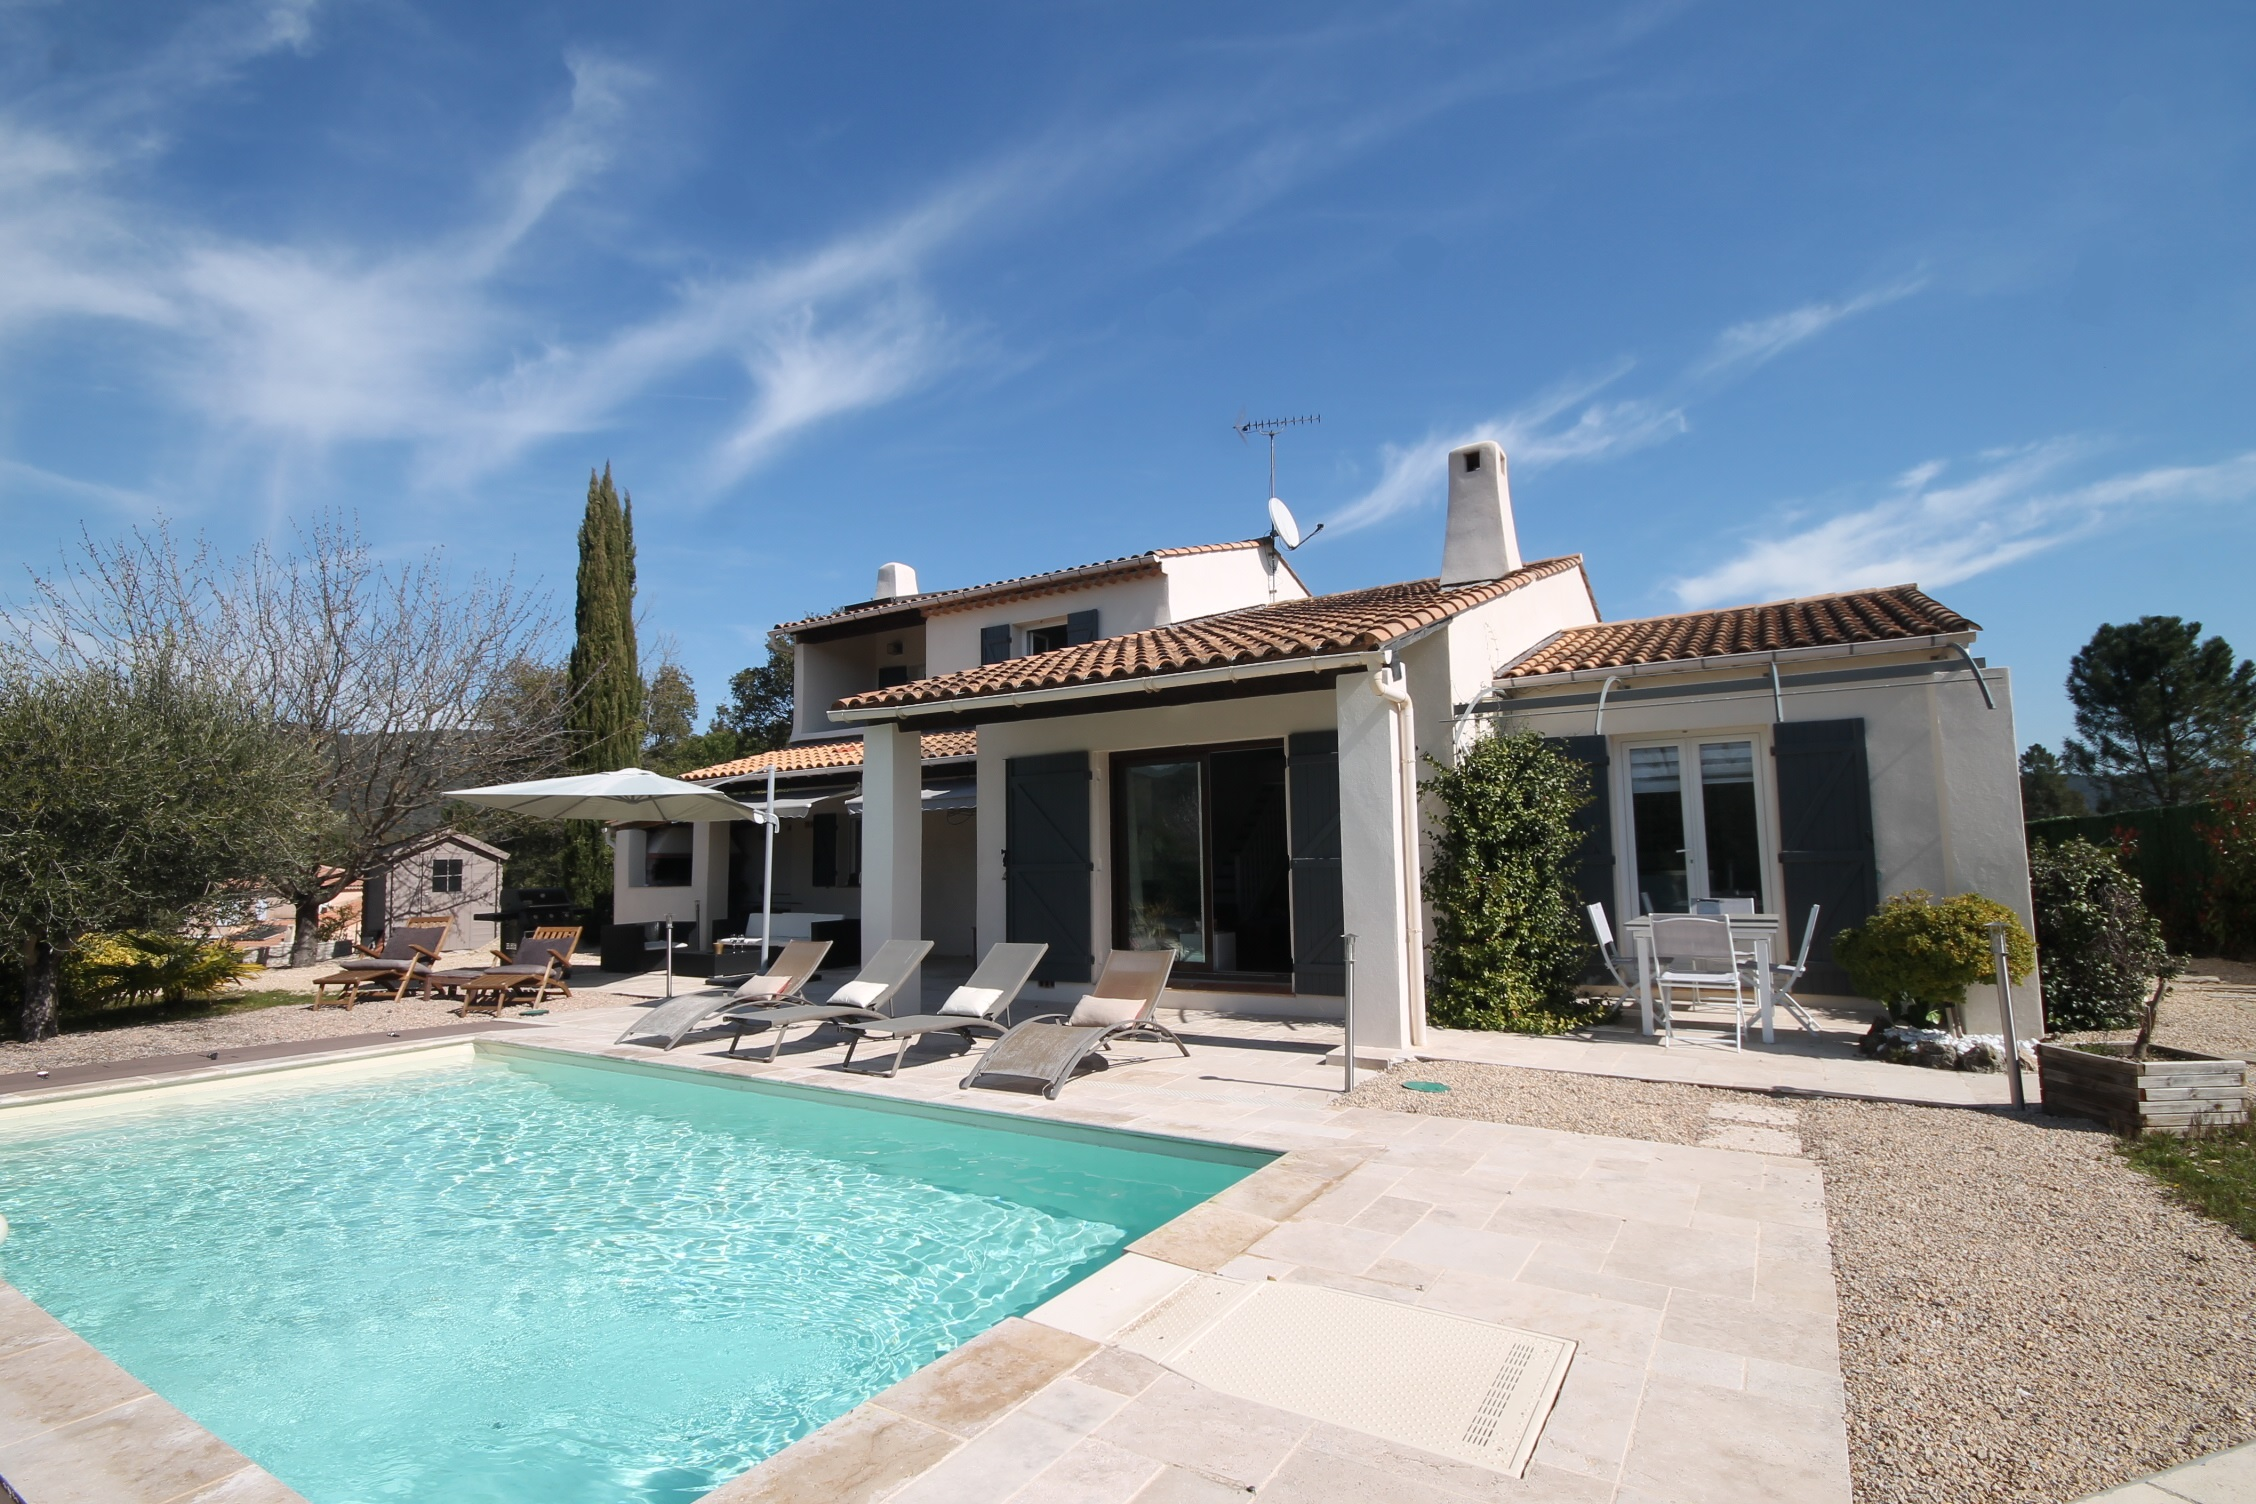 Fayence Holiday Rental, villa, 8 people, AL076 - Photo